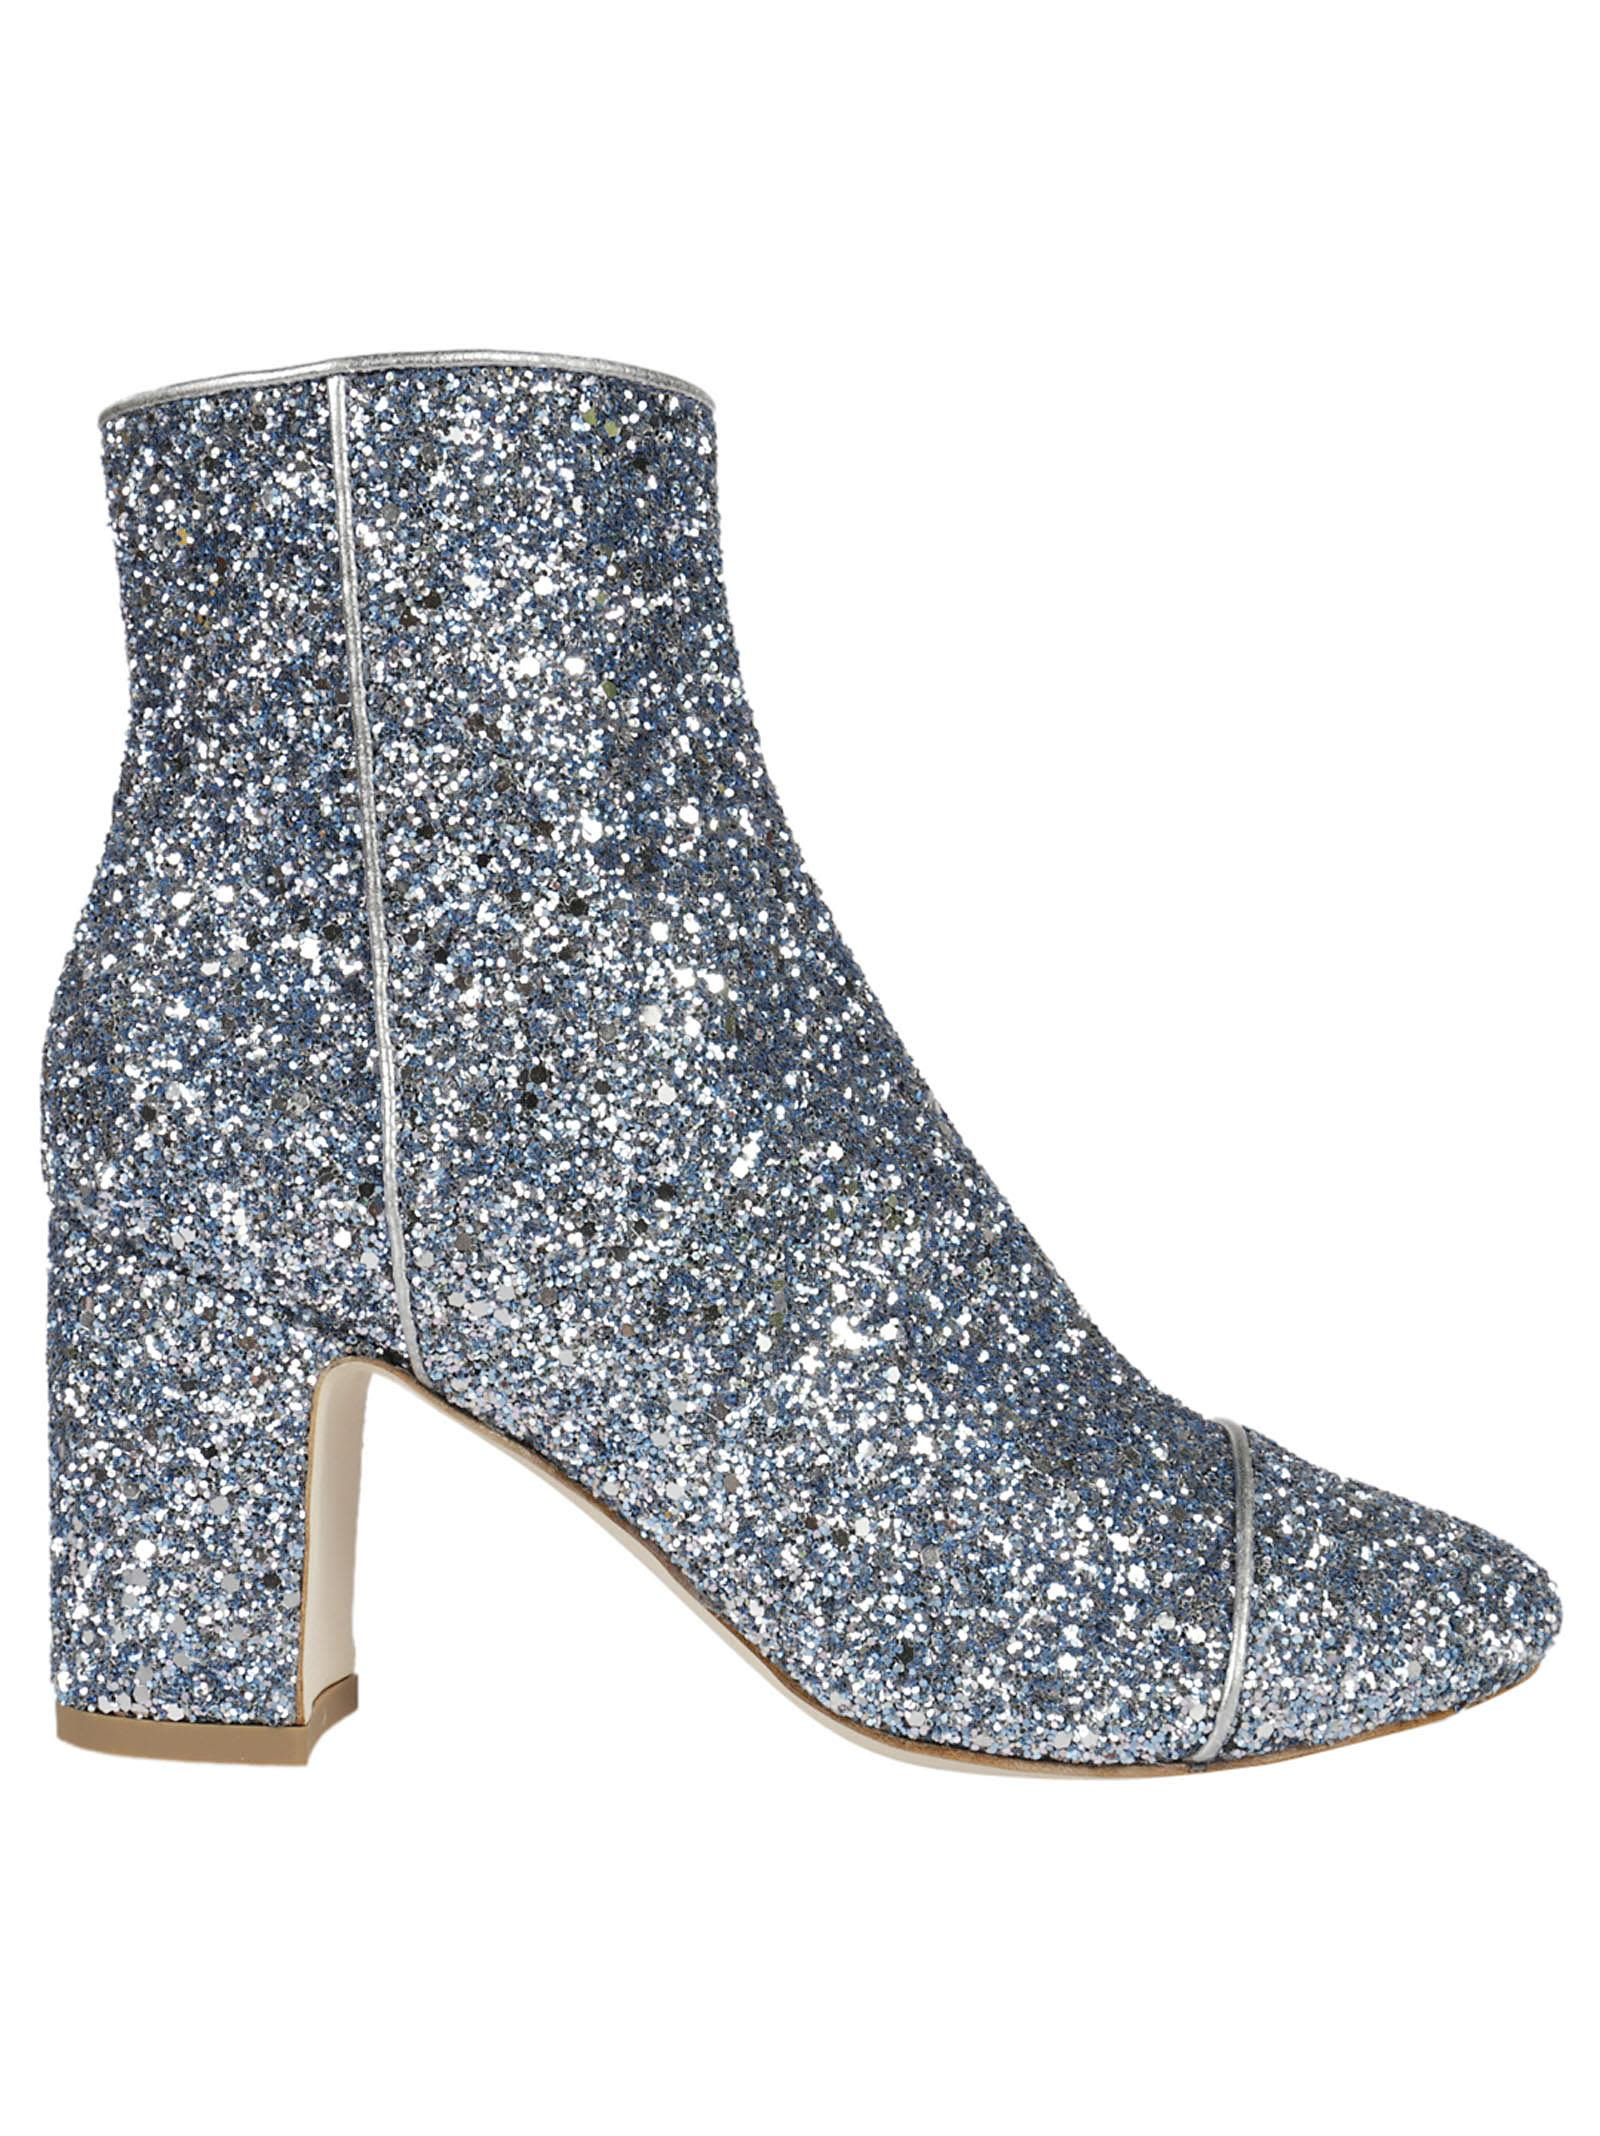 Polly Plume Ally Sparkling Sequin Ankle Boots